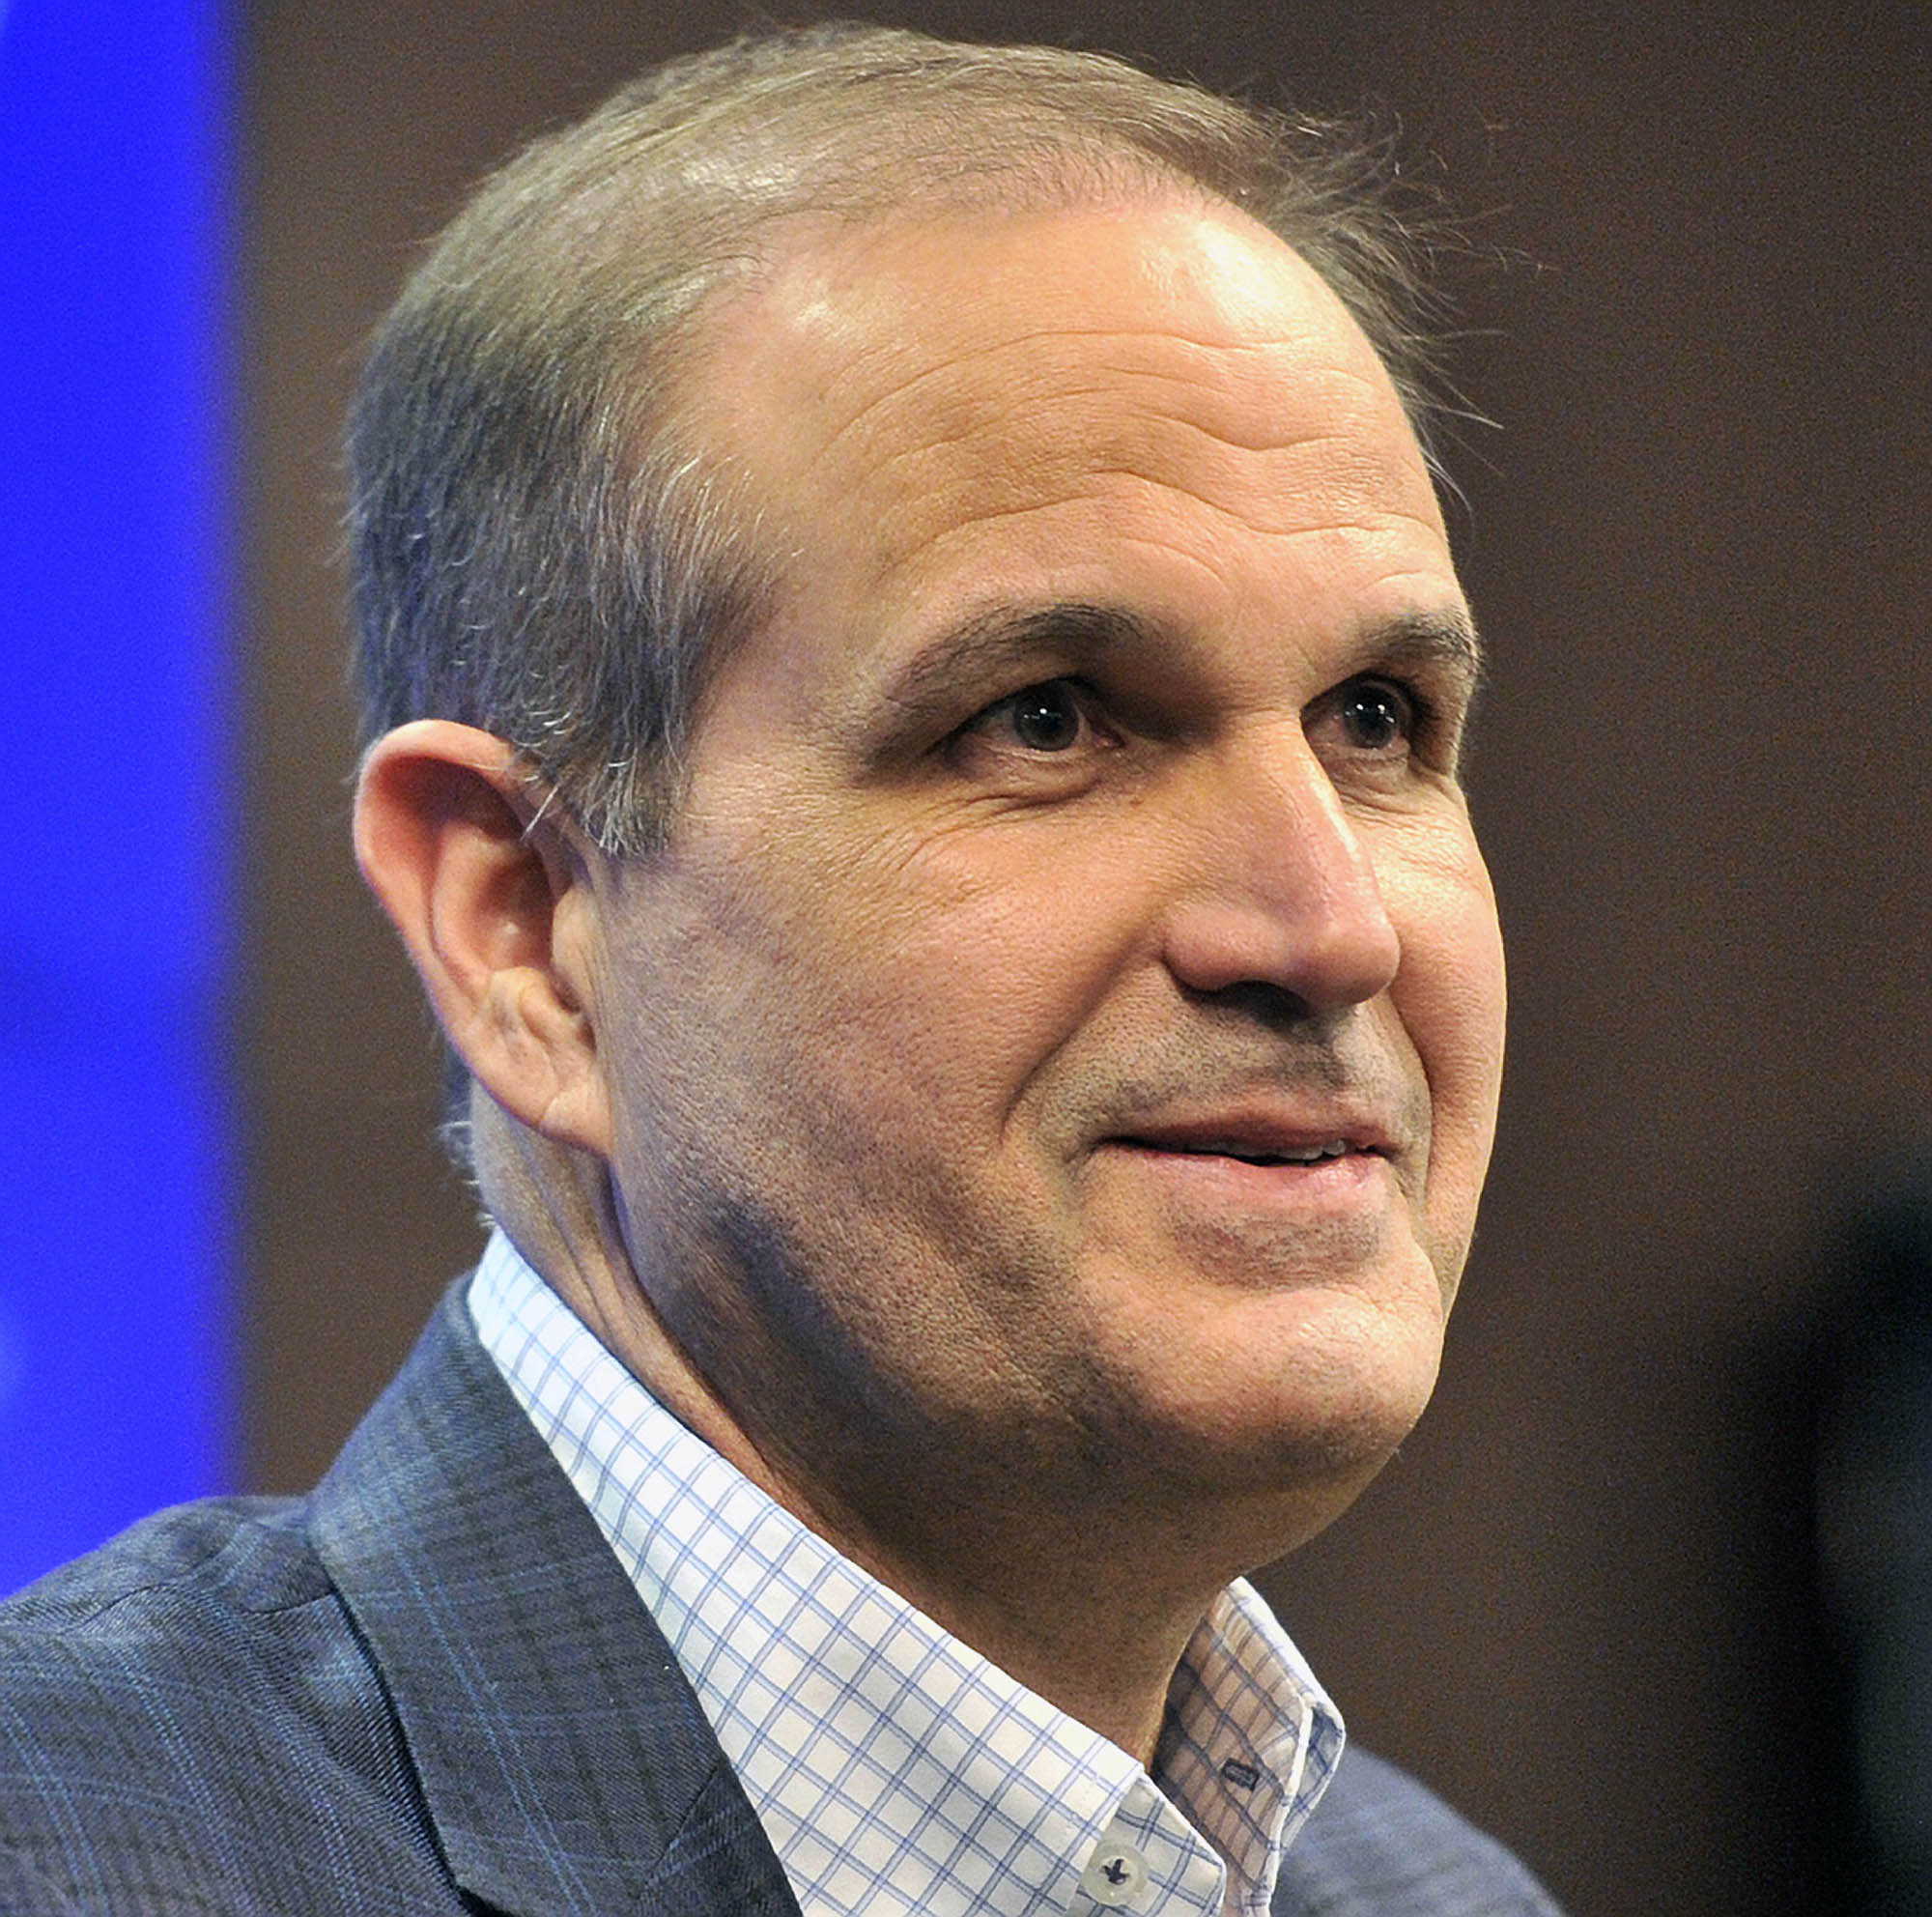 Kevin Steele speaks to the media after being introduced as Auburn's defensive coordinator Tuesday, Jan. 5, 2016, at Auburn Athletic Complex  in Auburn, Ala. (Julie Bennett /AL.com via AP) MAGS OUT; MANDATORY CREDIT